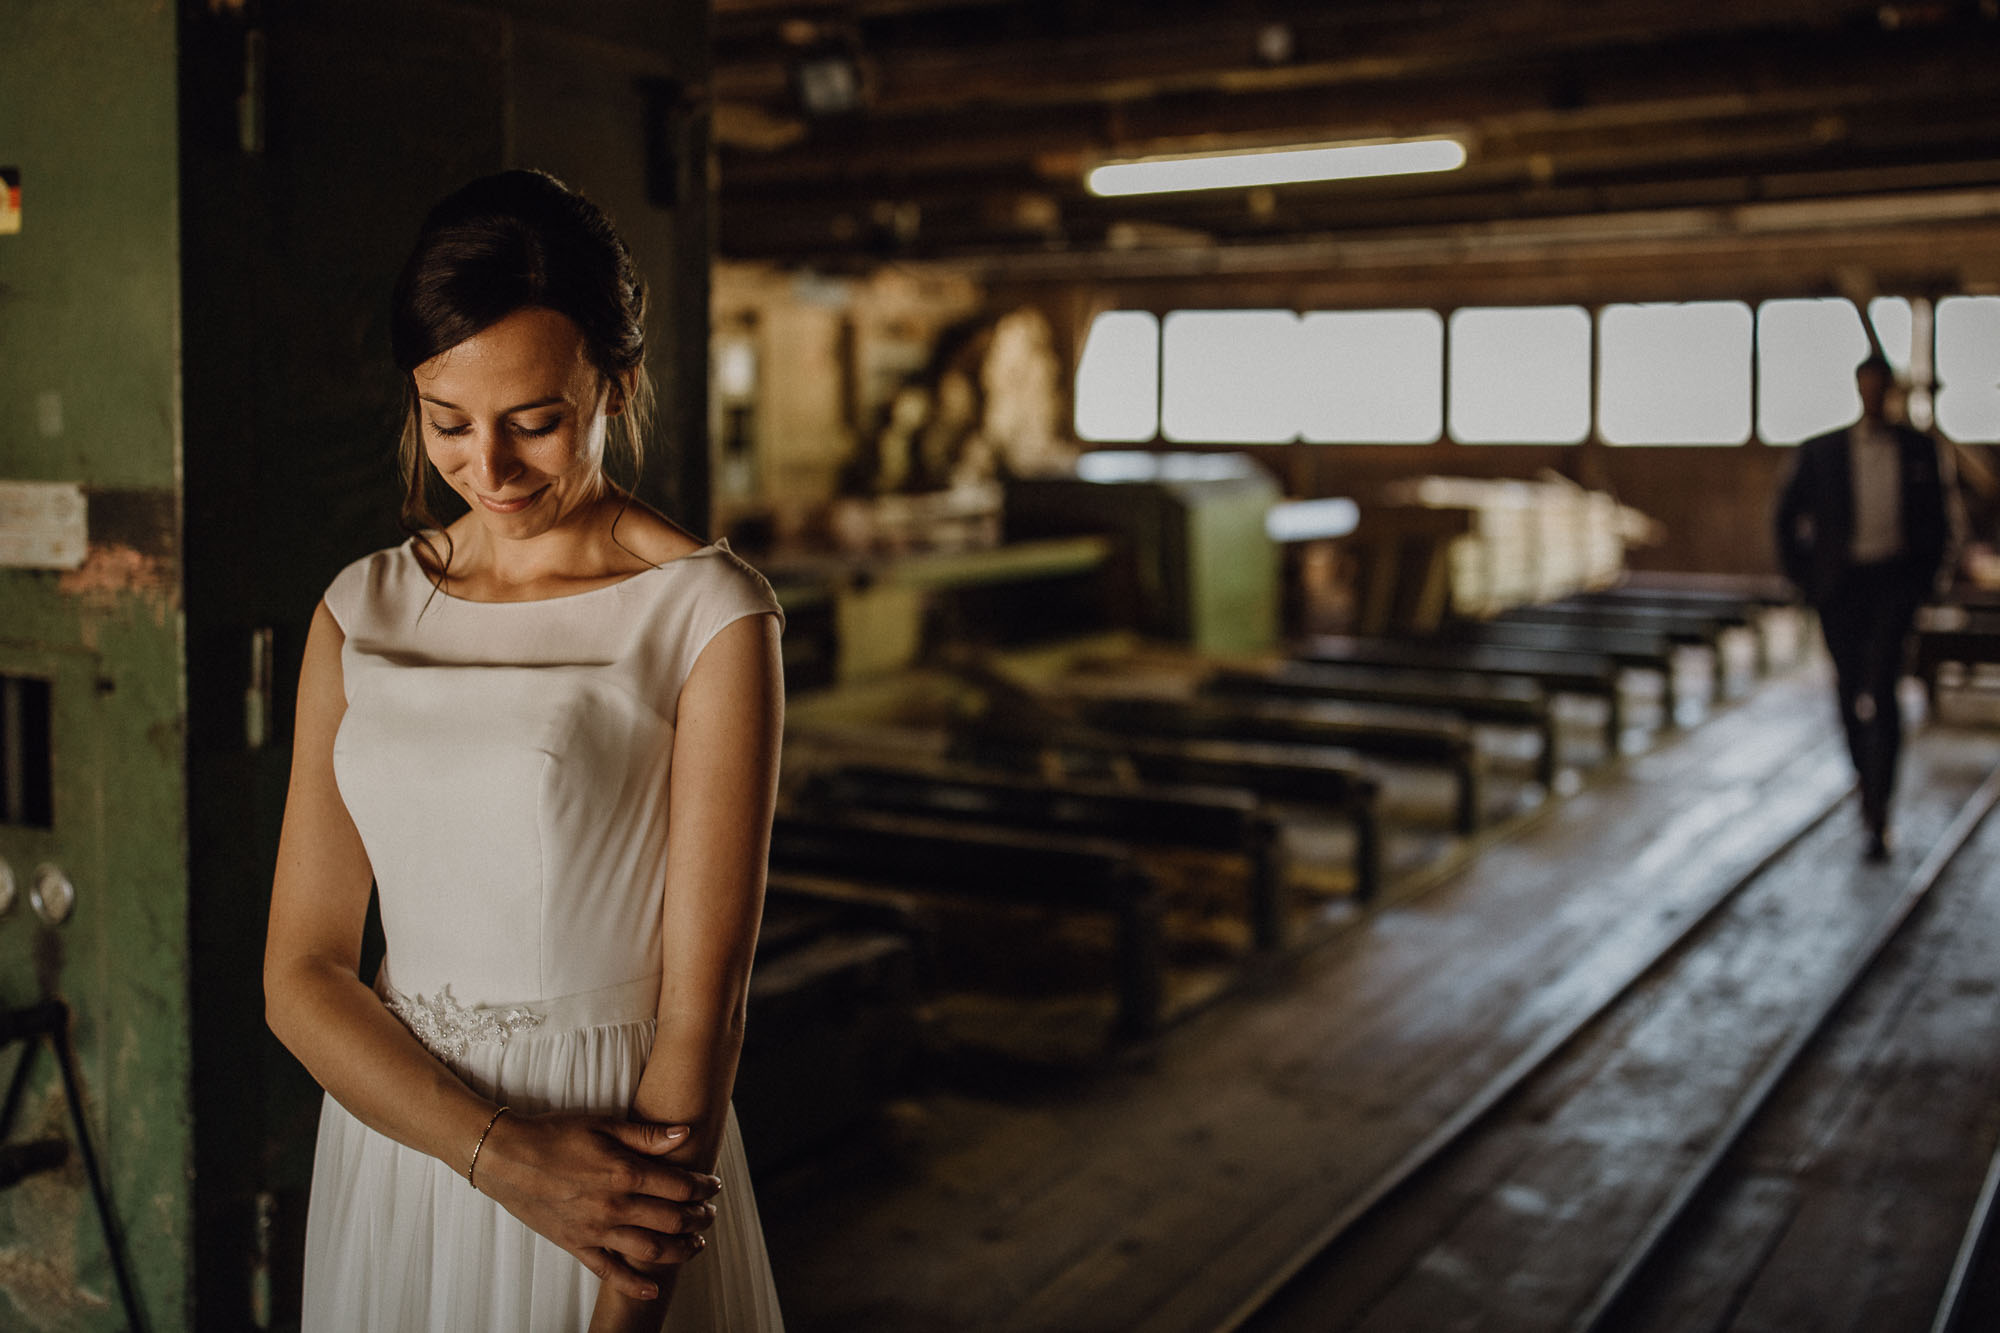 raissa simon photography destination wedding munich black forest barn 032 - Melanie + Sebastian